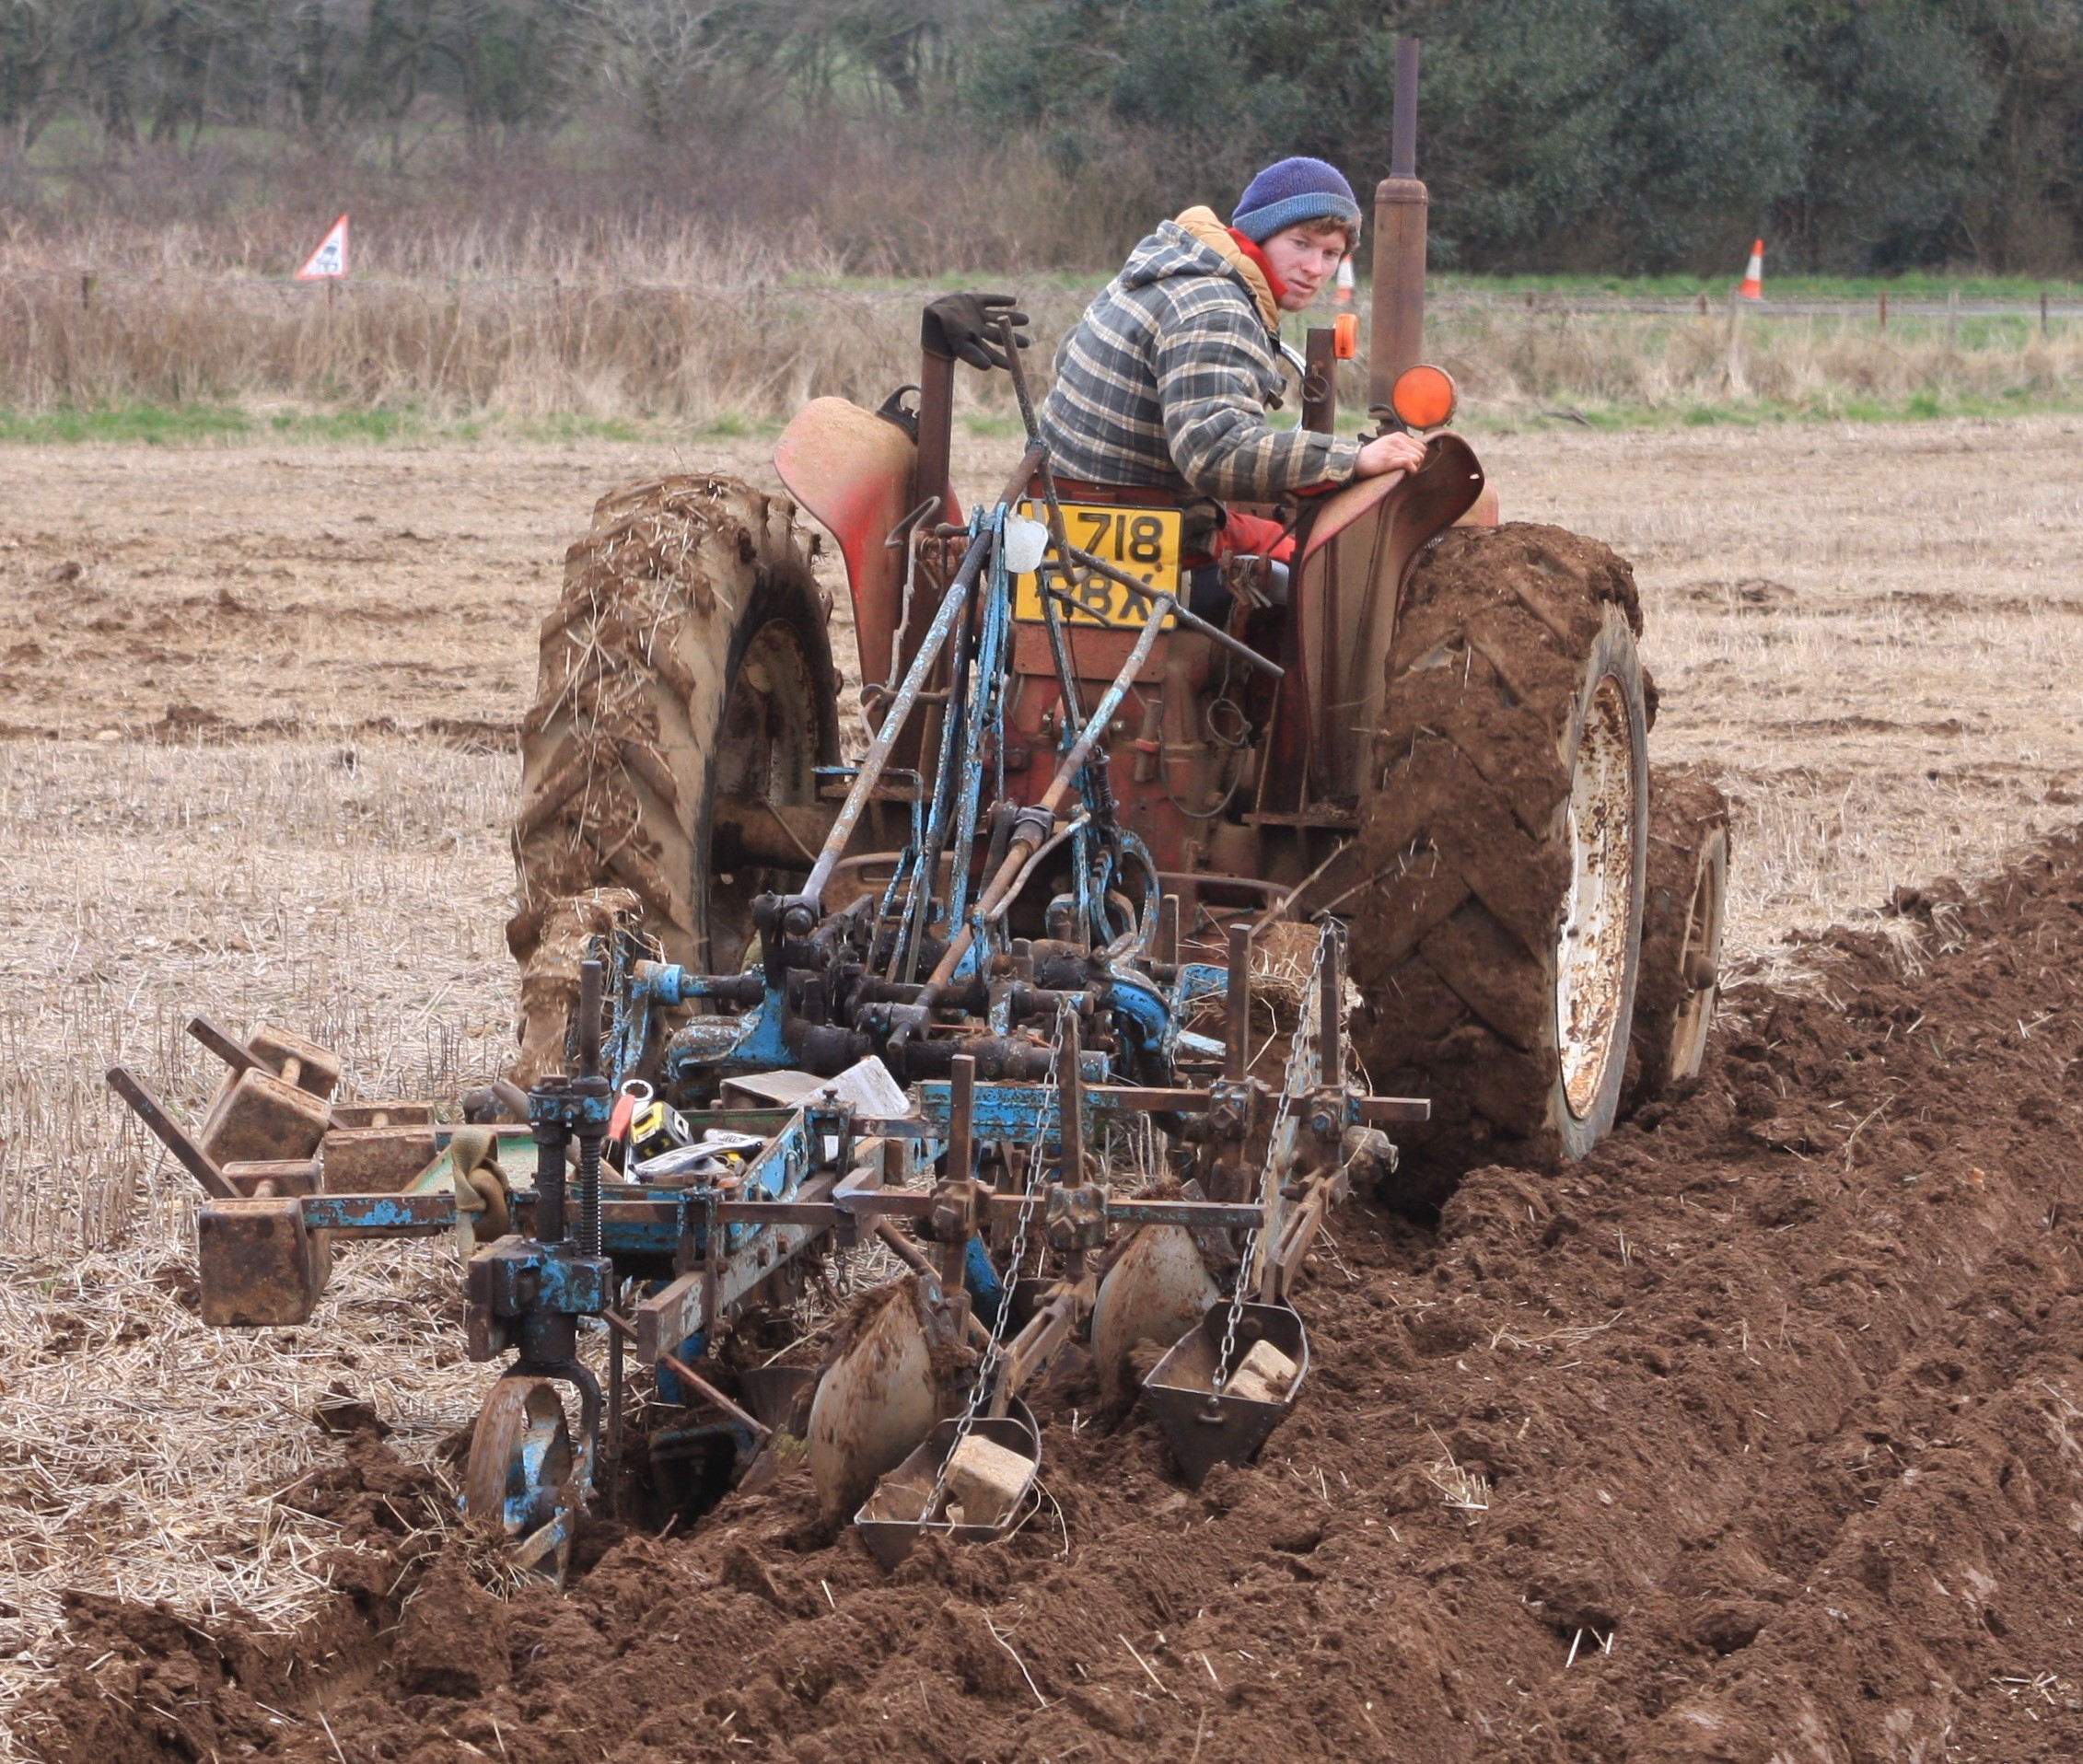 Young challenger Tom Chinn working with an International B250 tractor drawing an intricately adjusted two furrow high-cut plough PICTURE: Meyrick Brown